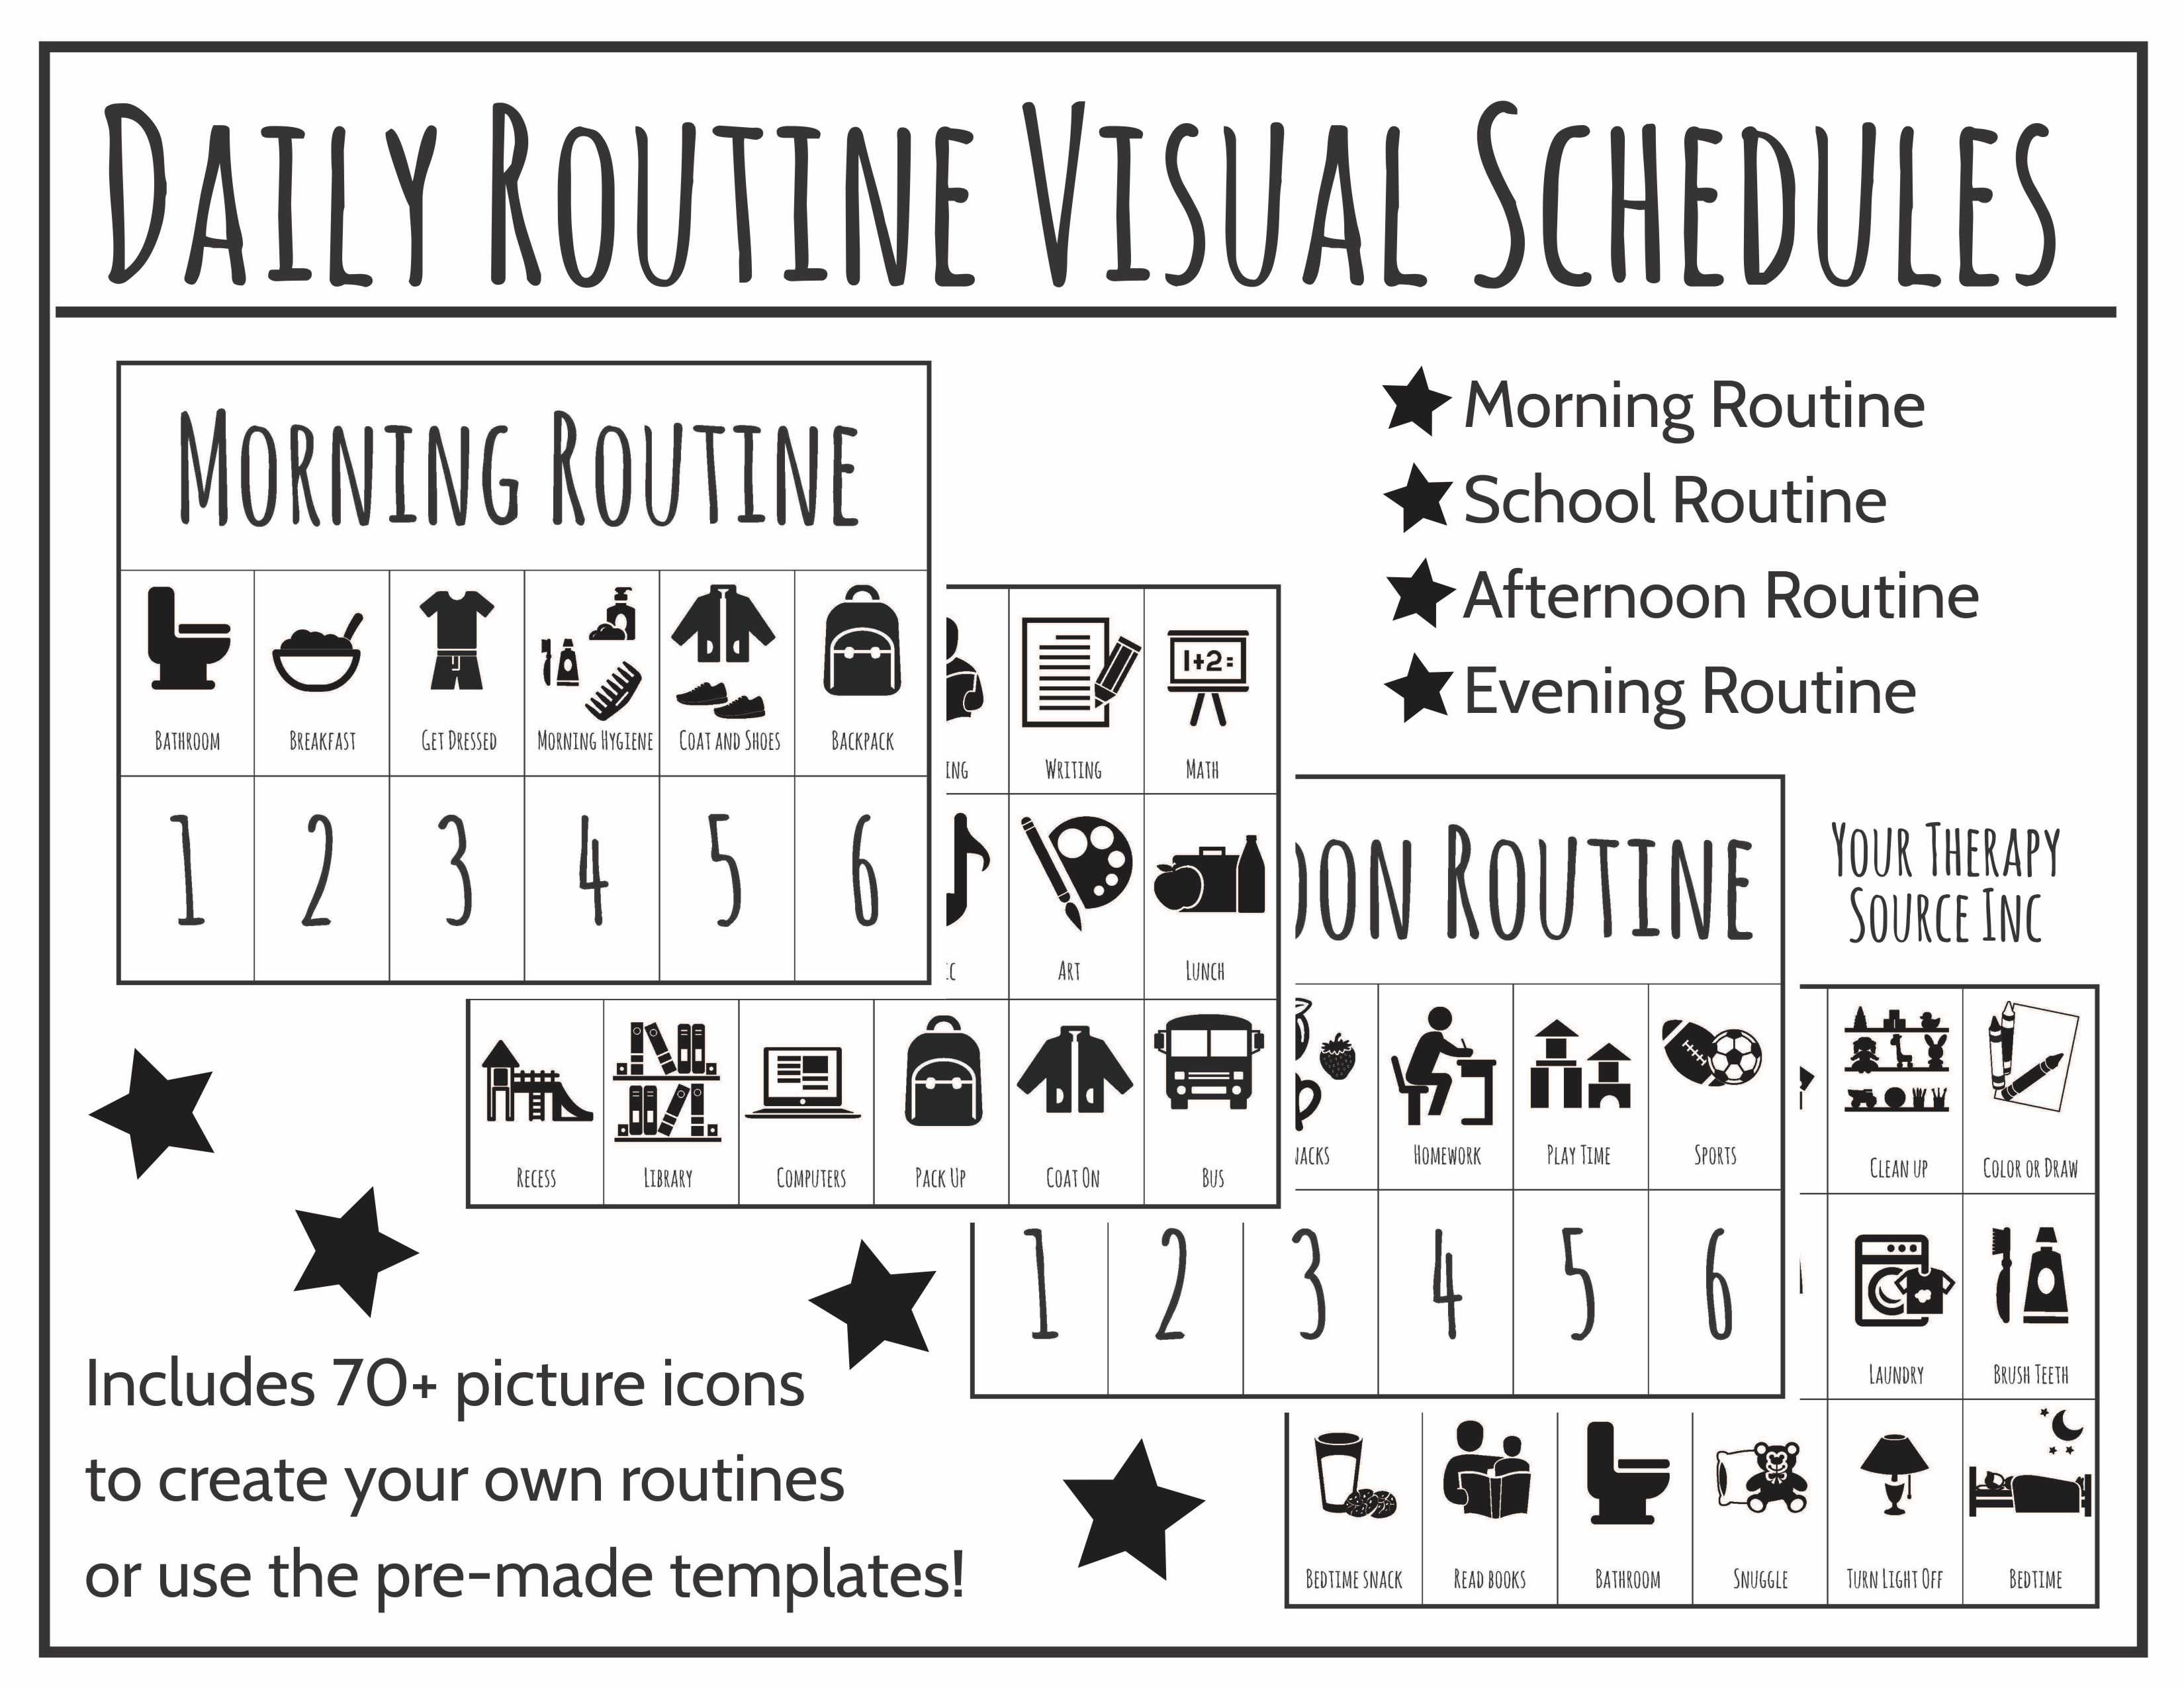 Daily Routine Visual Schedules Your Therapy Source